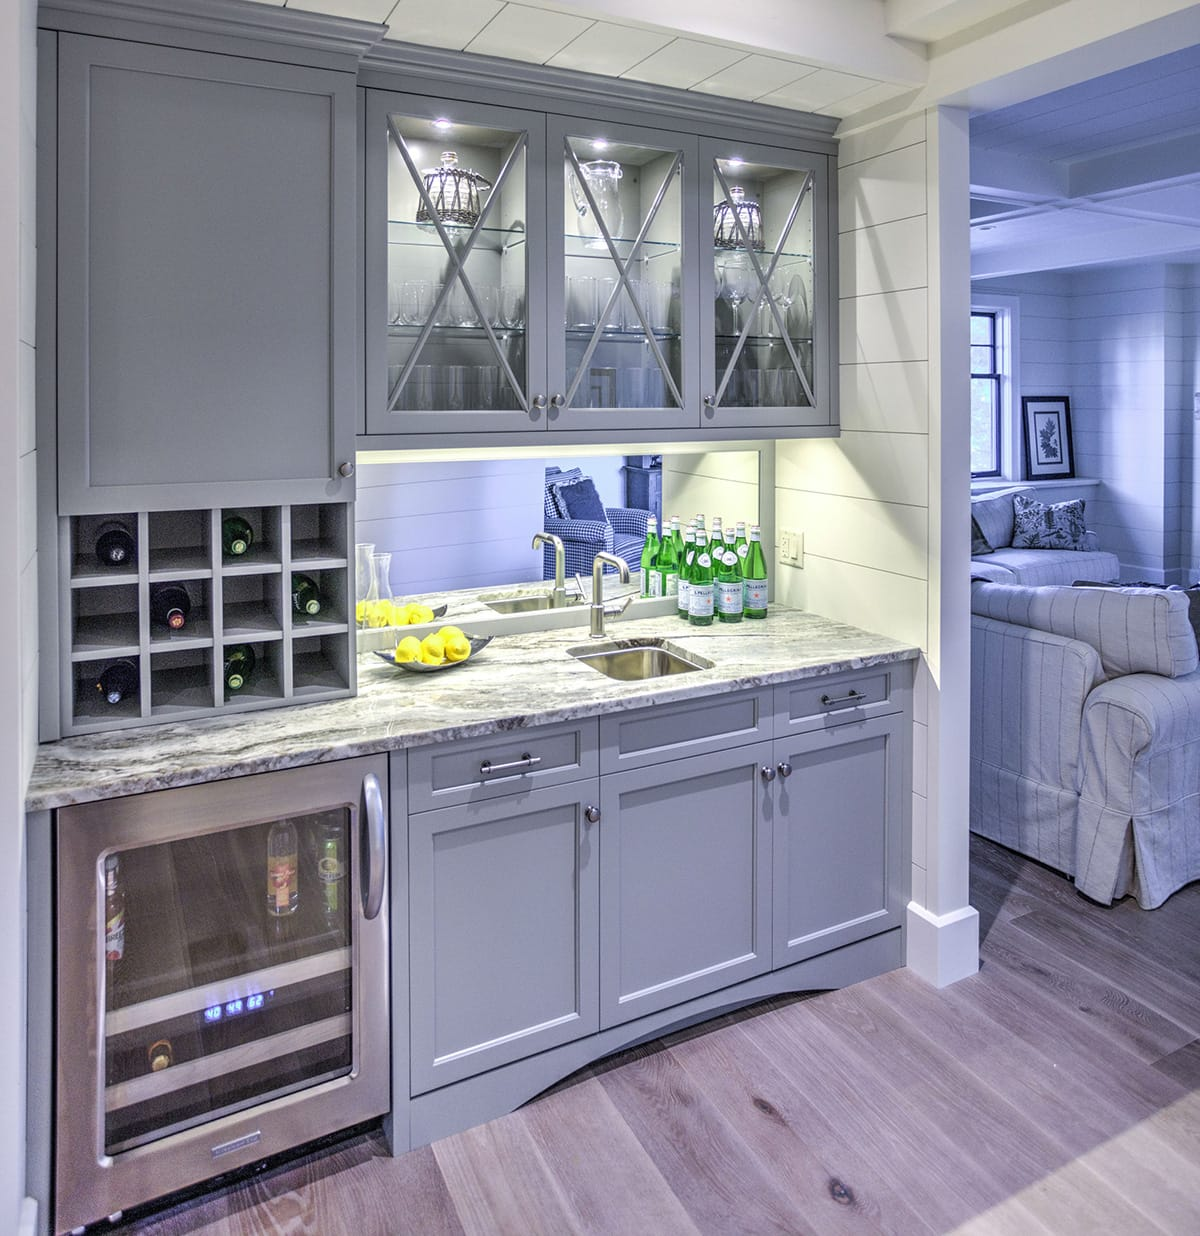 Other Rooms Northern Living Kitchen And Bath Ltd